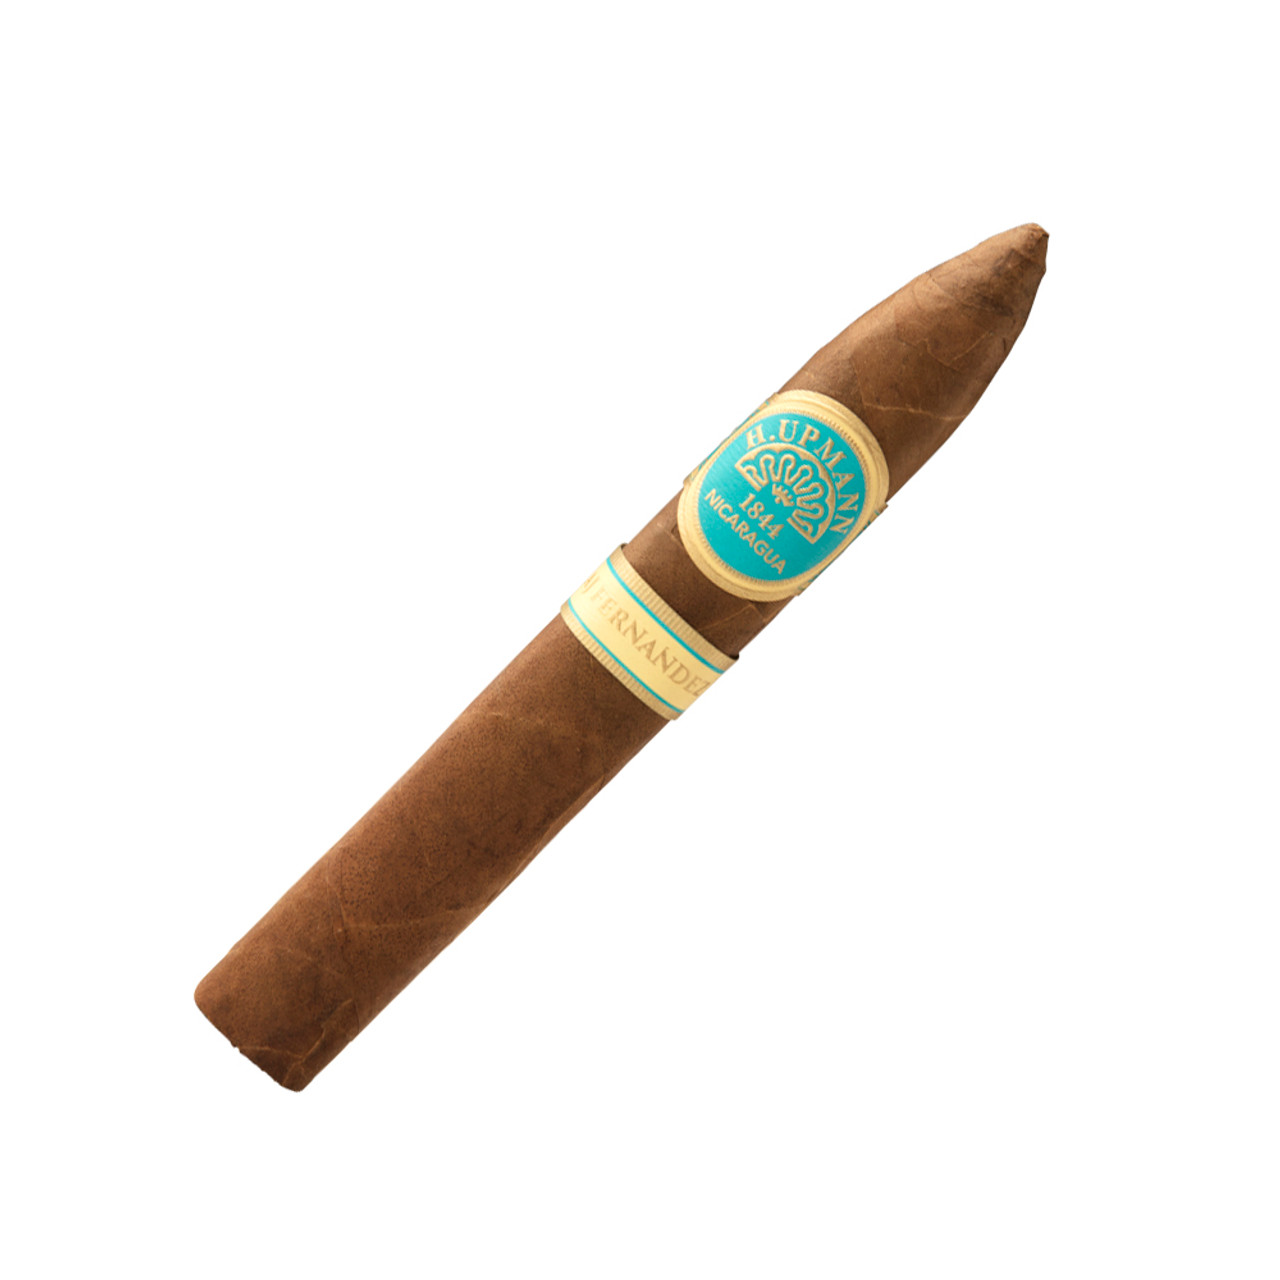 H. Upmann by AJ Fernandez Belicoso BP Cigars - 6.18 x 58 (Box of 20)